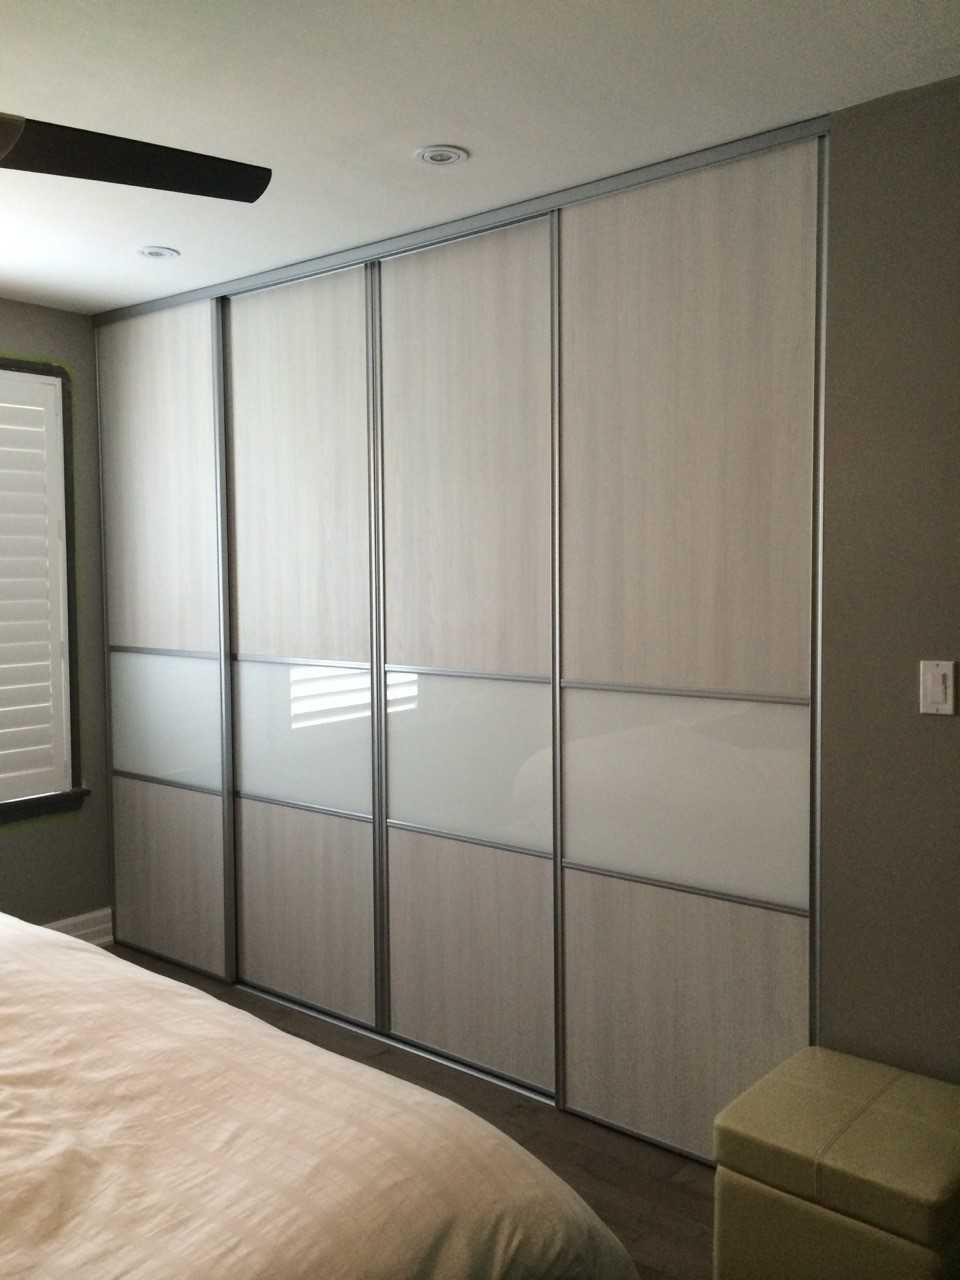 Sliding doors komandor for Back painted glass designs for wardrobe